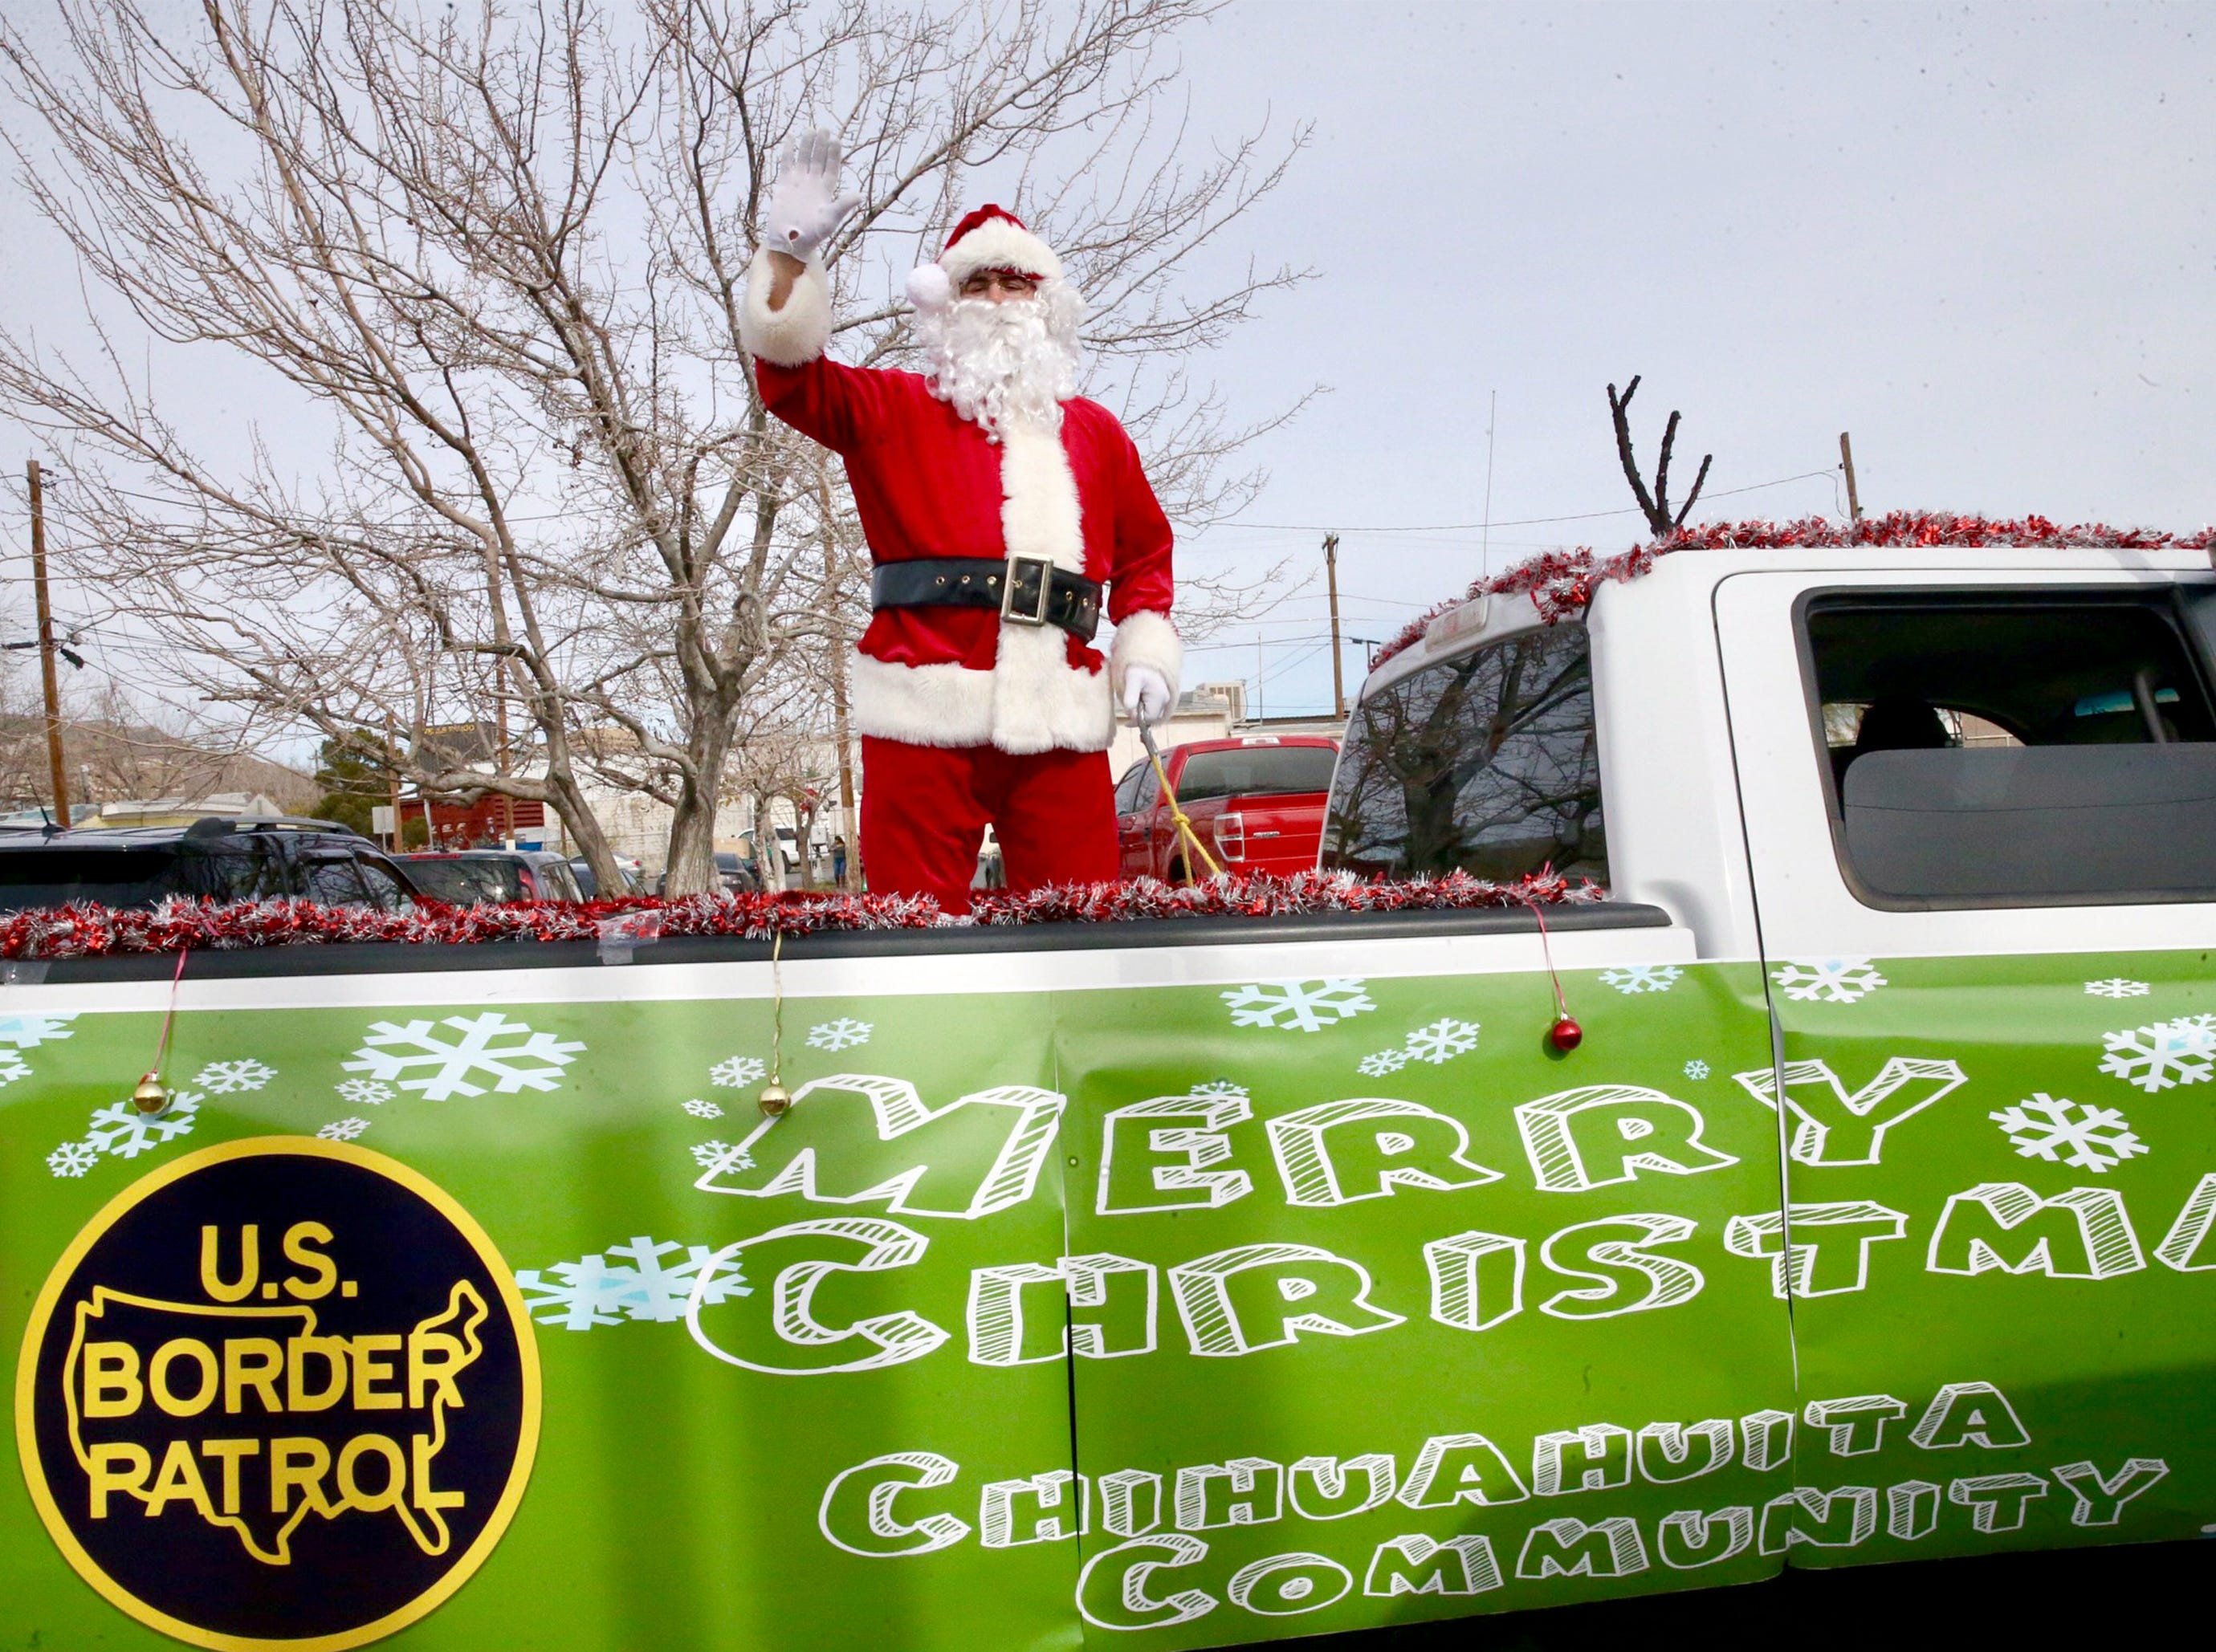 Santa arrives at the Chihuahuita Community Center on the back of a pickup truck Friday.